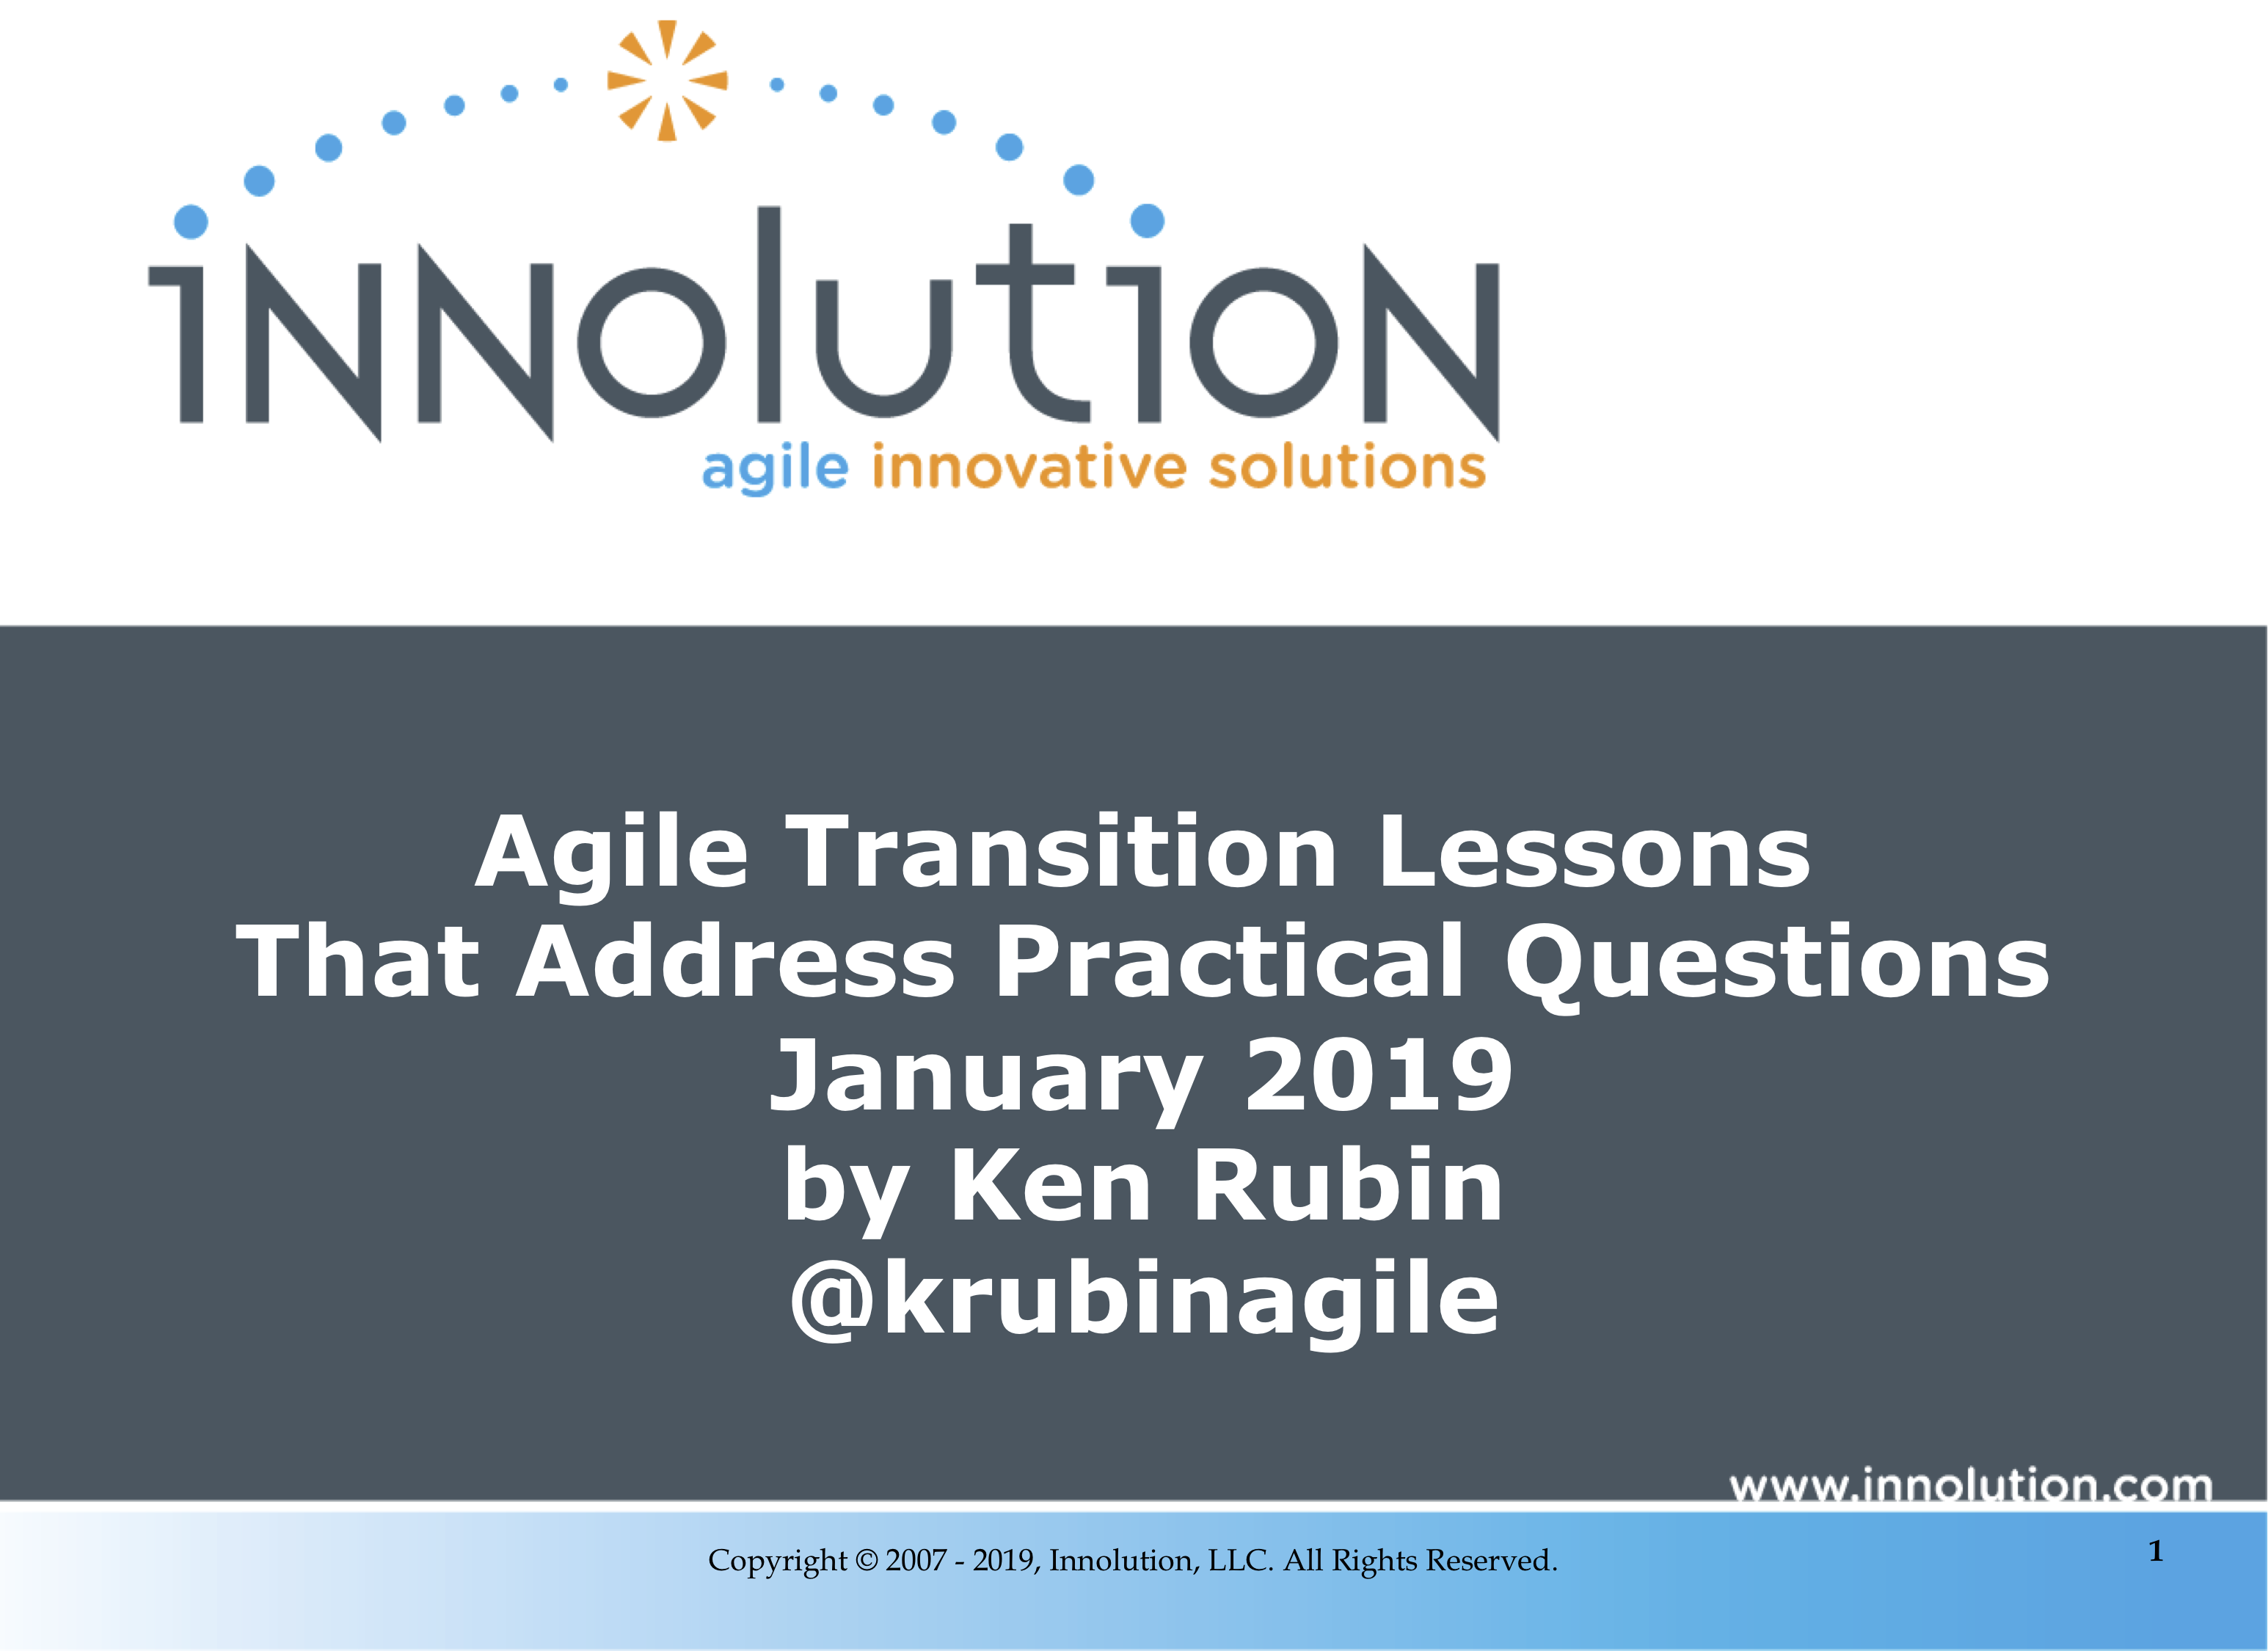 Jan 2019 - Agile Transition Lessons That Address Practical Questions